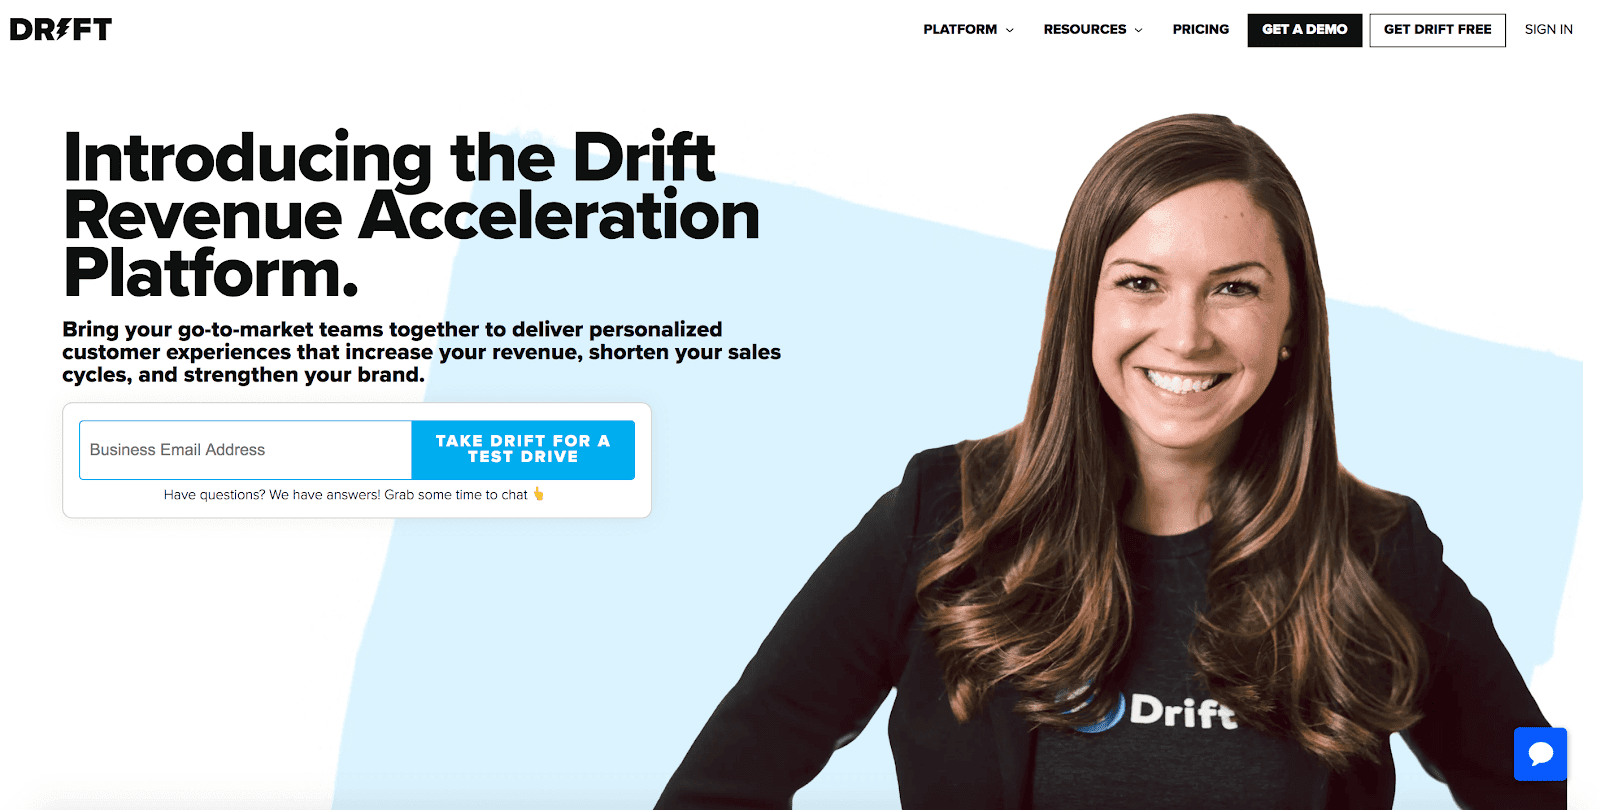 Drift SaaS homepage 2021.